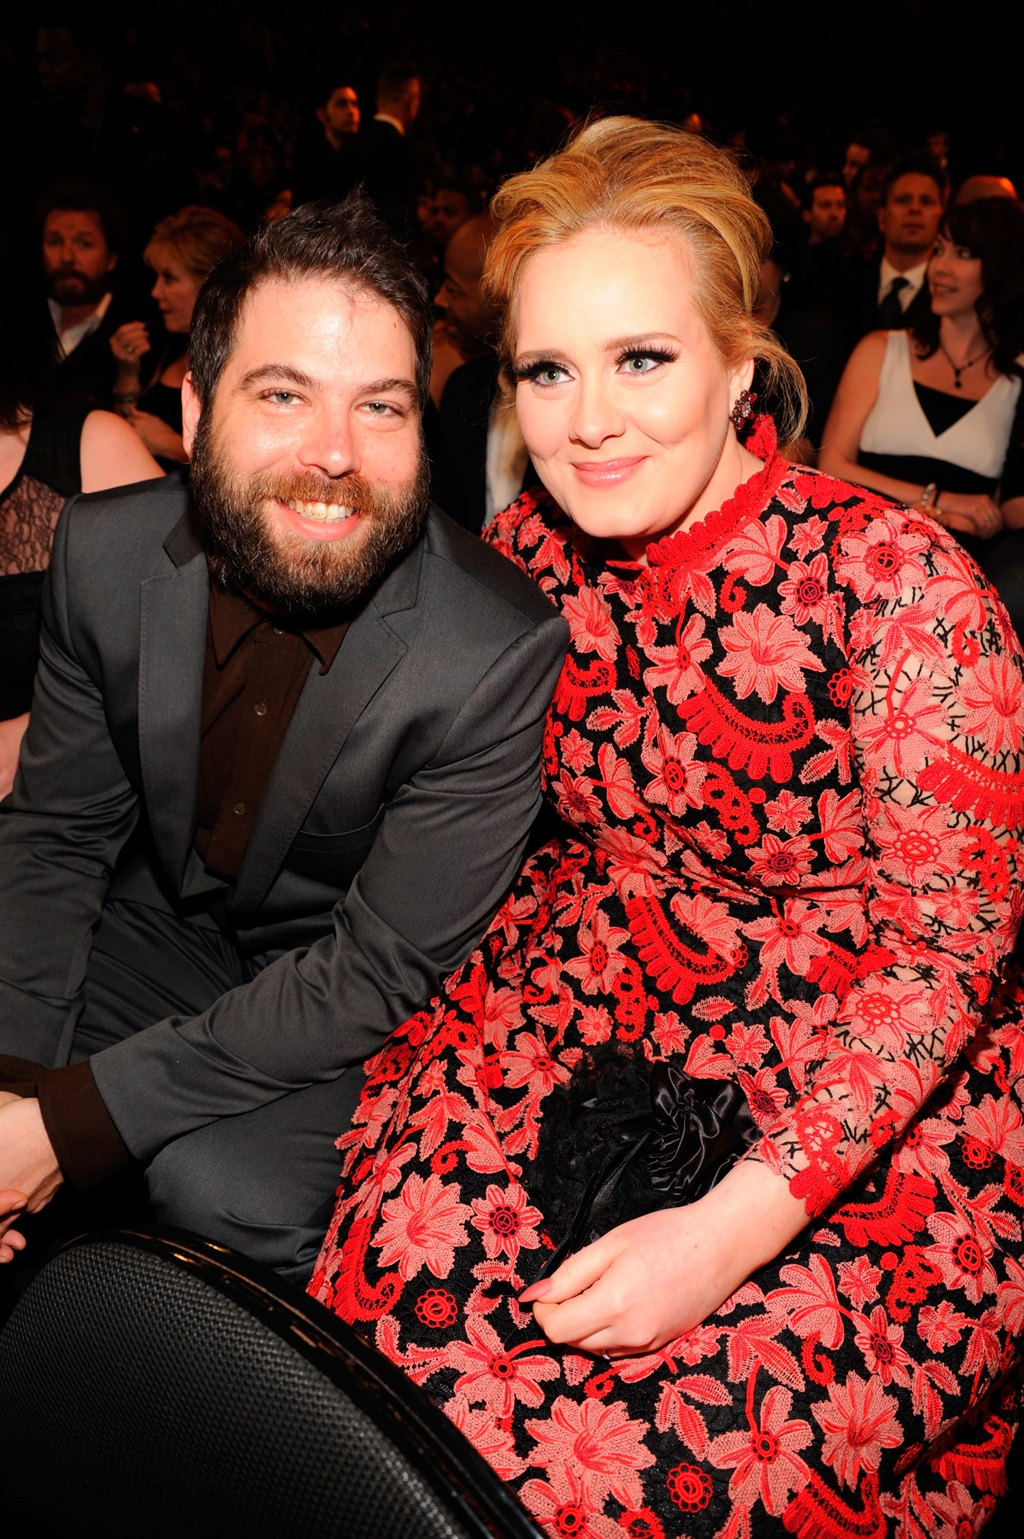 LOS ANGELES, CA - FEBRUARY 10: Adele (R) and Simo